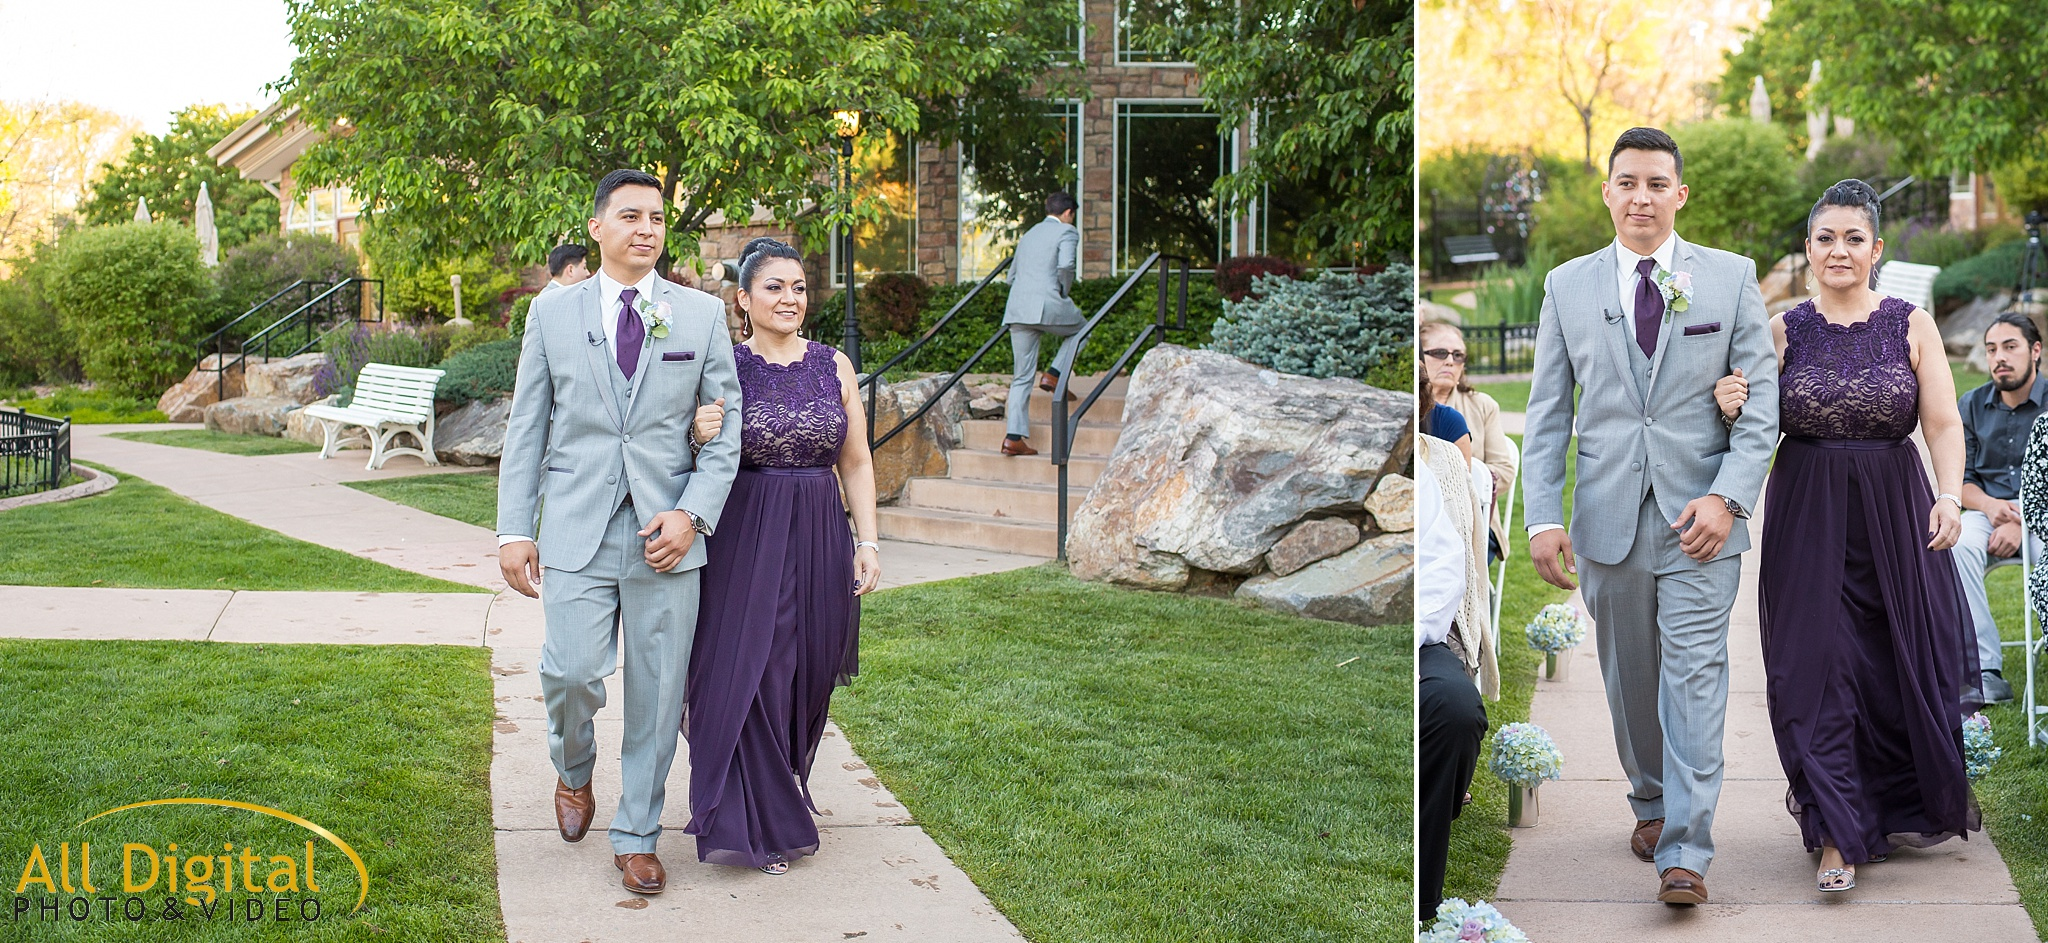 Groom walking his mother down the aisle at Stonebrook Manor.